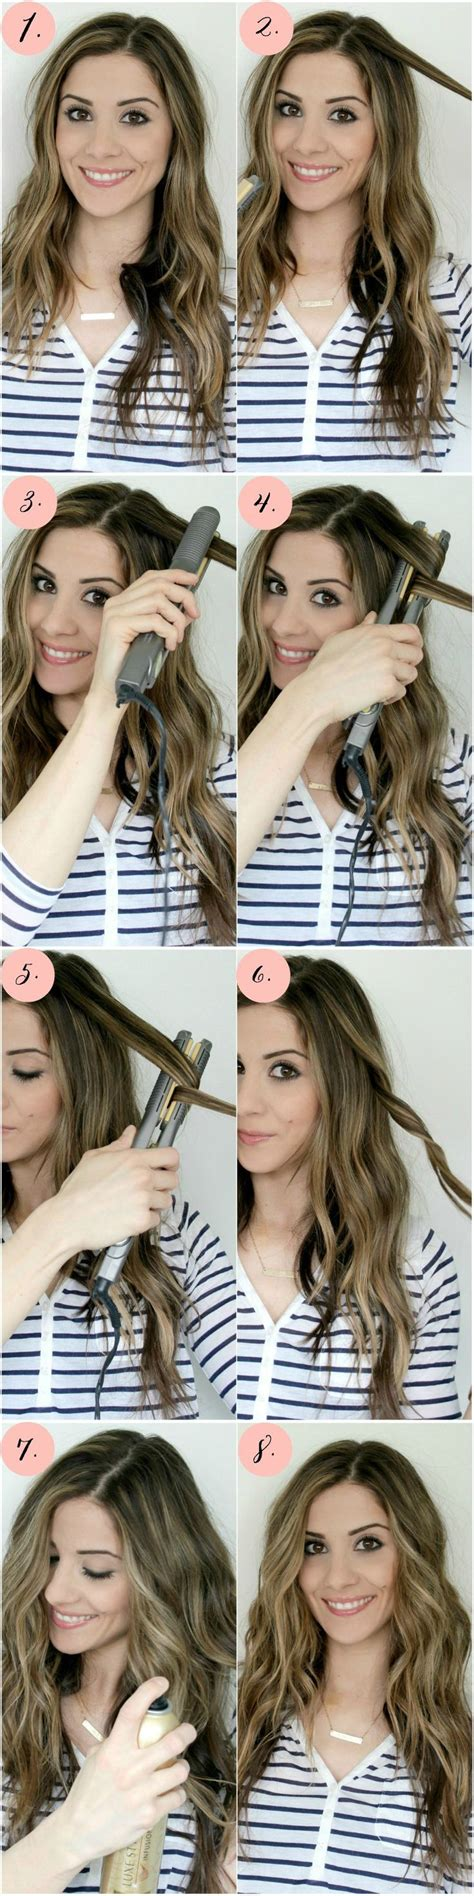 curly hairstyles using straightener 25 best ideas about flat iron curls on pinterest hair